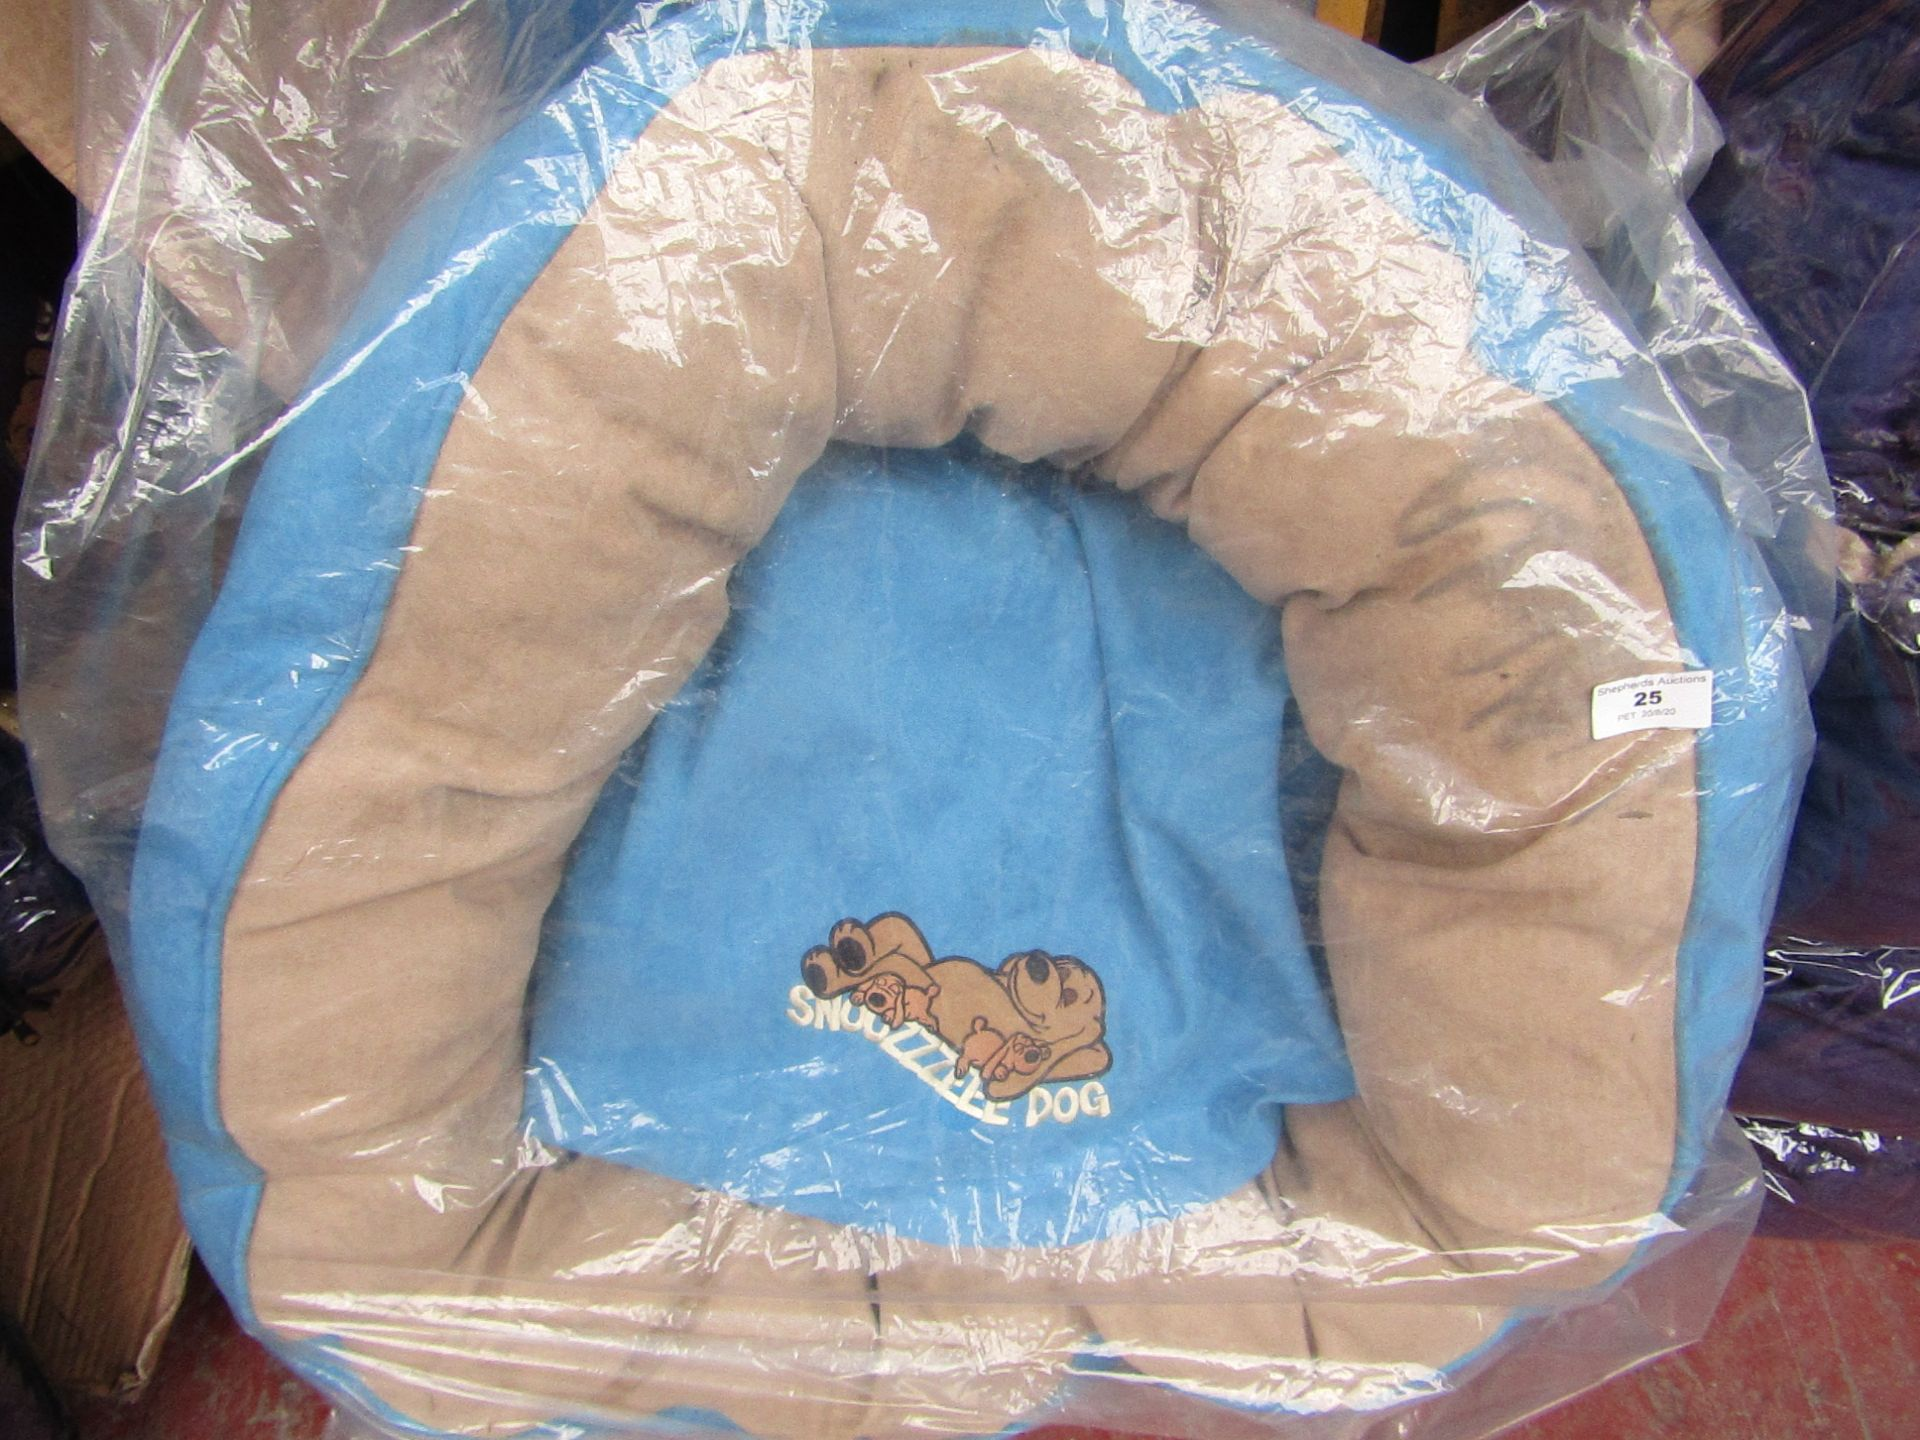 "1x Snoozzzeee Dog - Sky Blue Donut Dog Bed (28"") - Packaged."